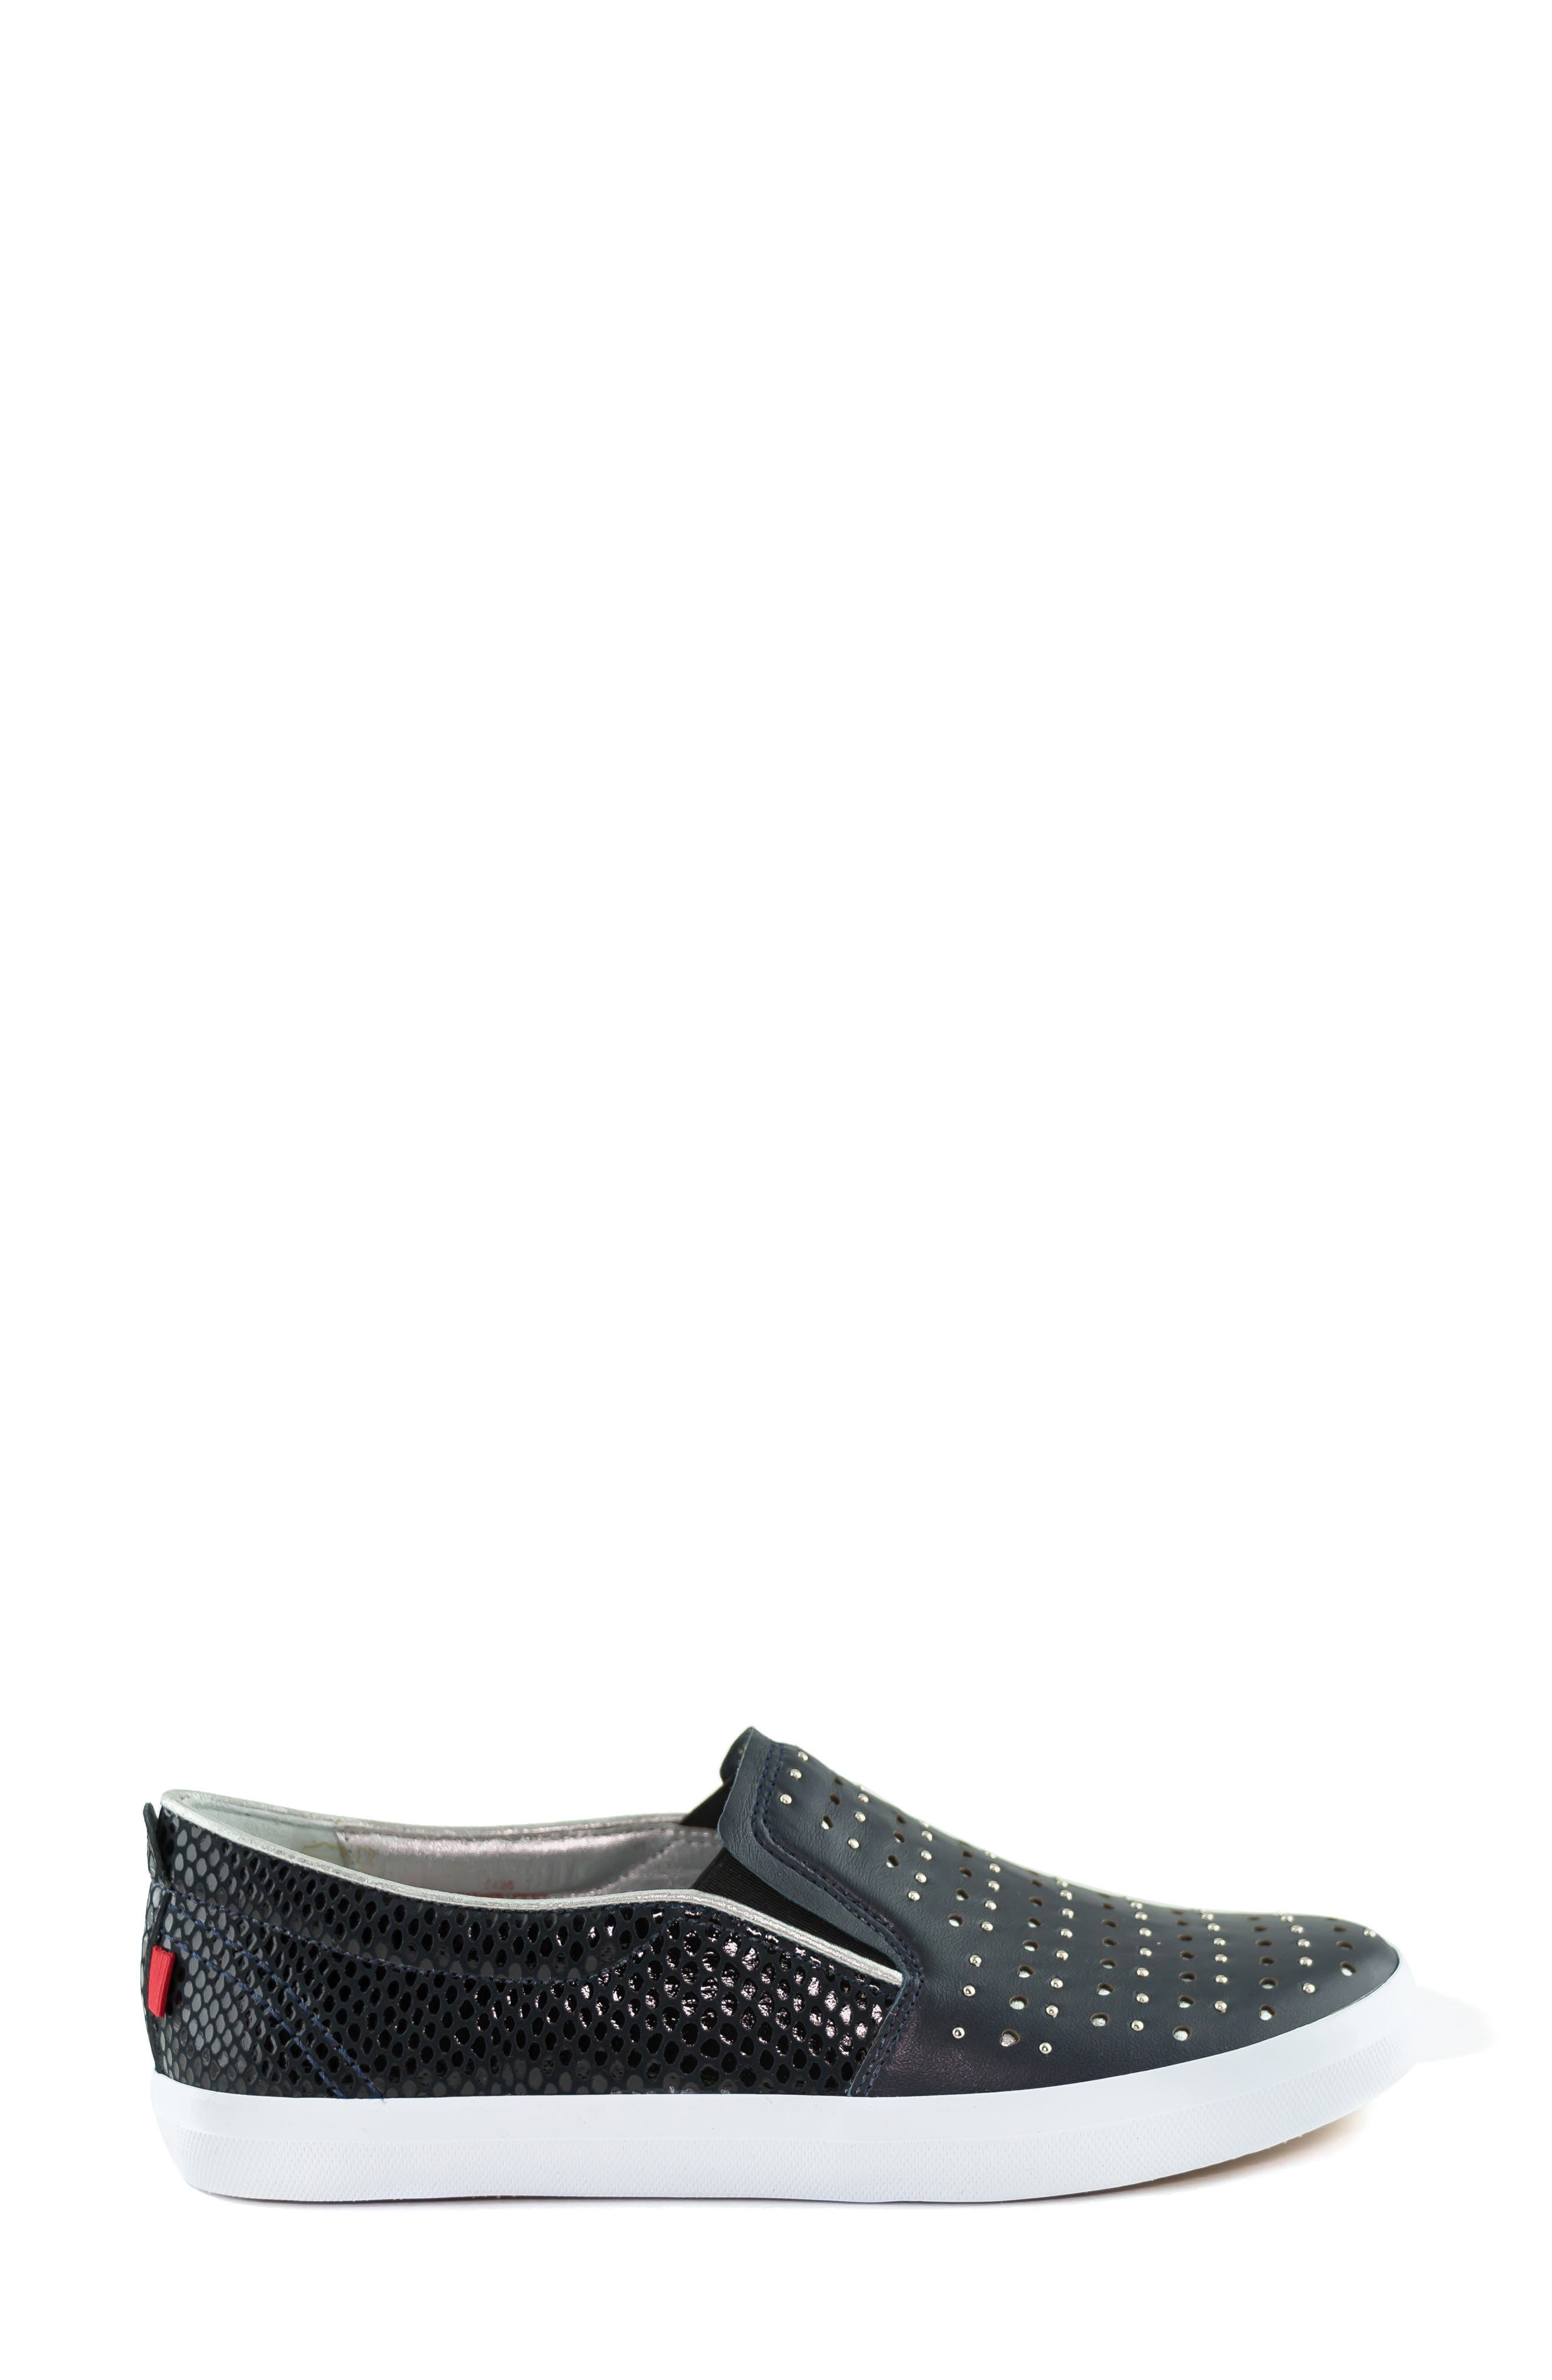 MARC JOSEPH NEW YORK, Soho Sneaker, Alternate thumbnail 3, color, NAVY LEATHER